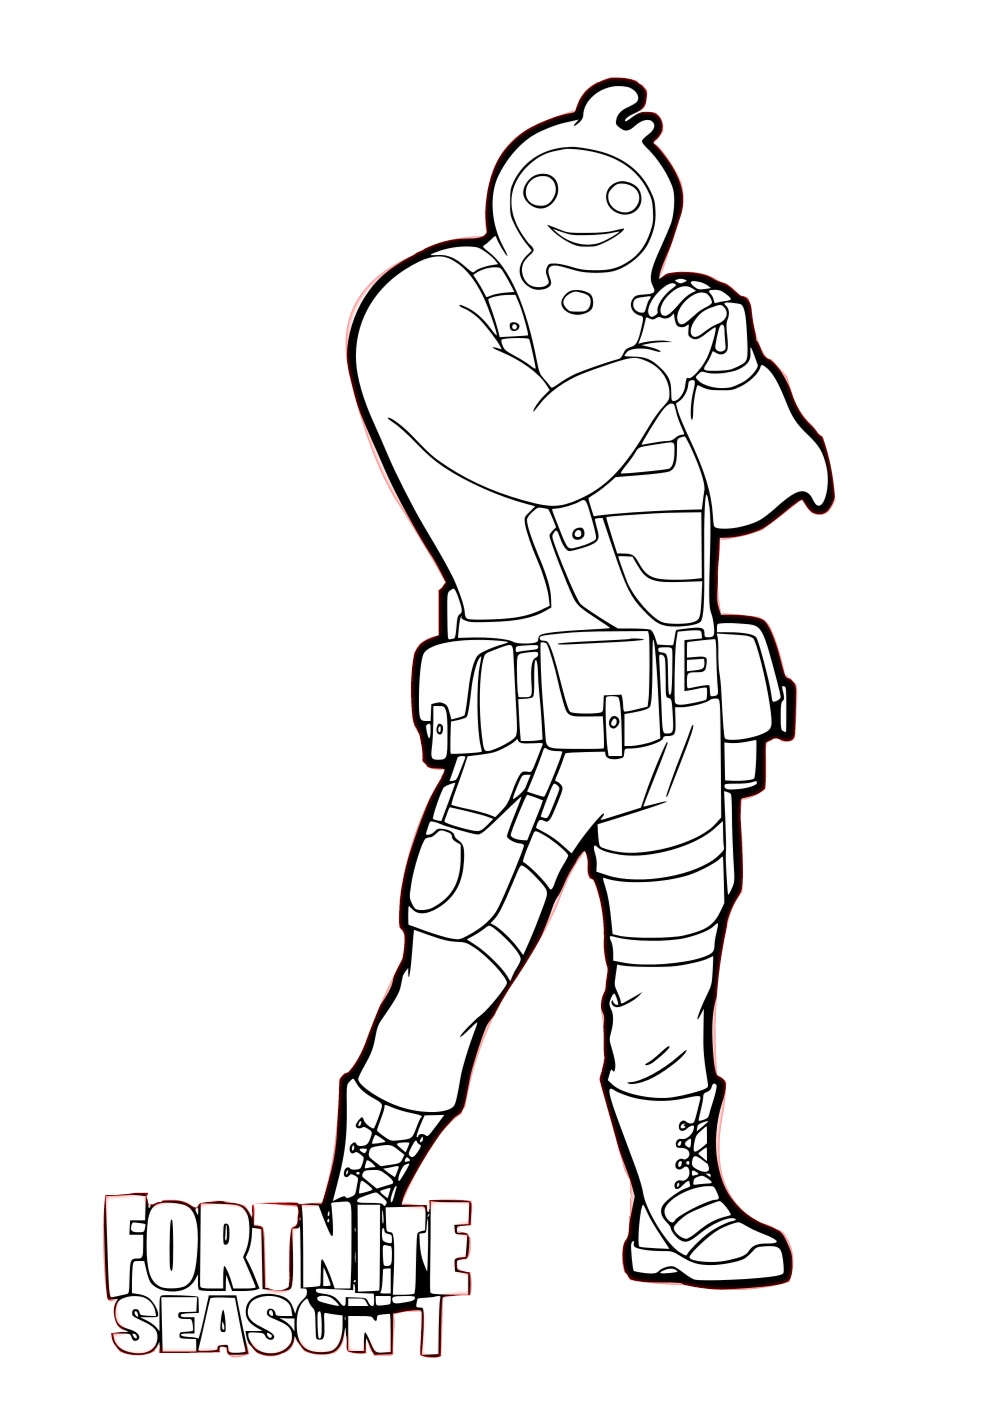 Fortnite Season 2 Player Rippley Coloring Pages